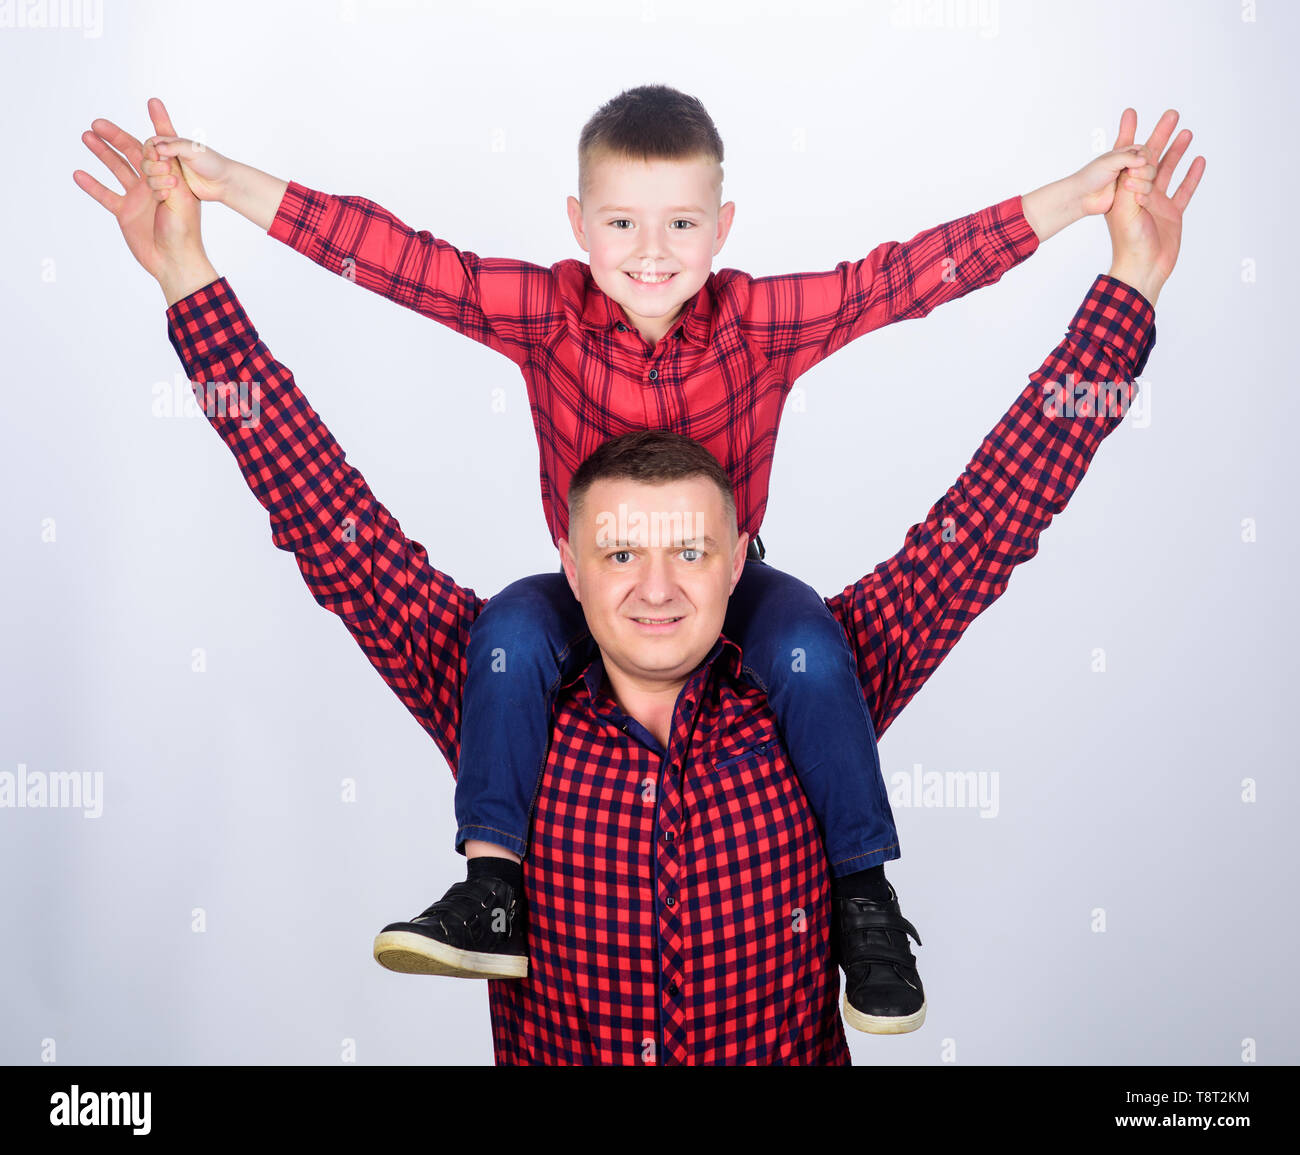 Father little son red shirts family look outfit. Child riding on dads shoulders. Happiness being father of boy. Having fun. Fathers day. Father example of noble human. Family time. Best friends. - Stock Image